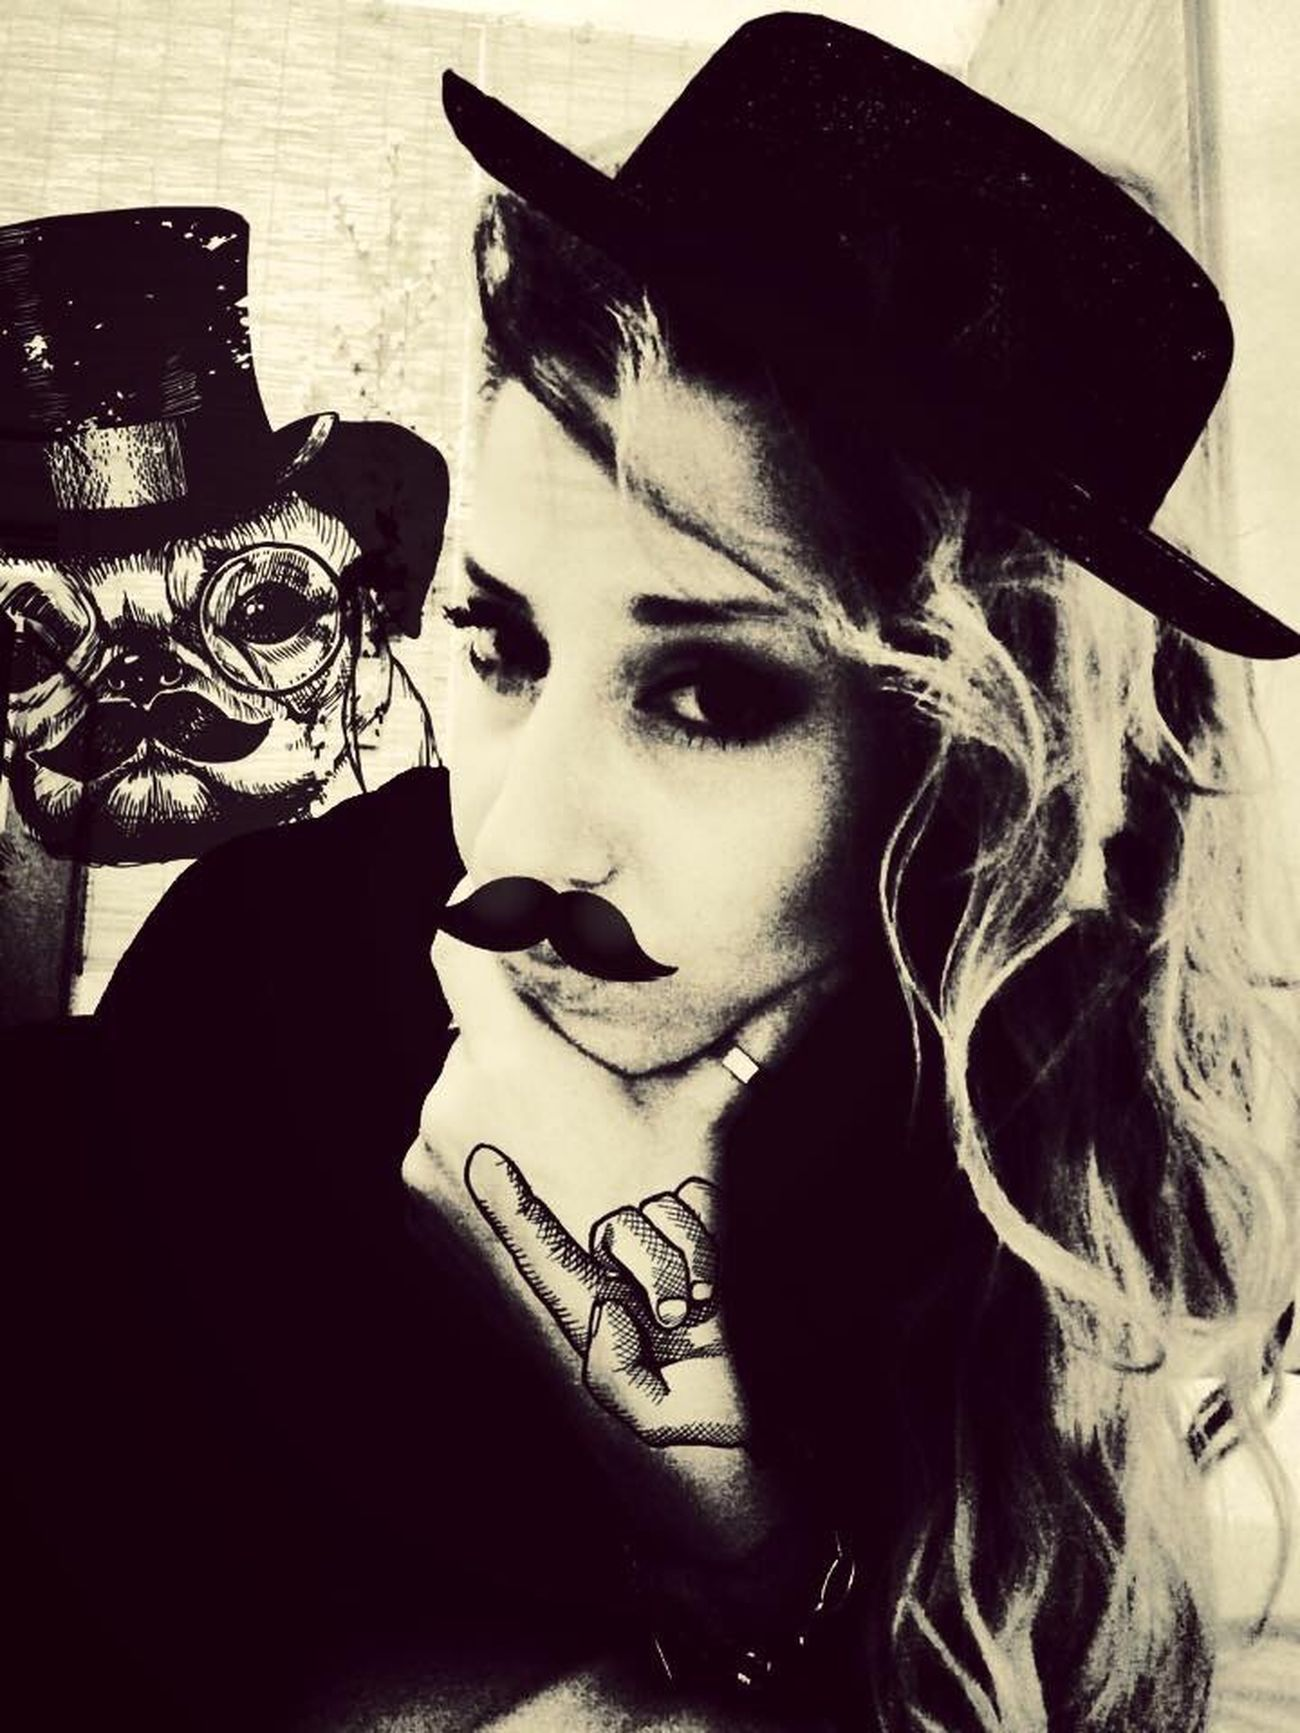 Find The Difference Blackandwhite Retro Chaplin